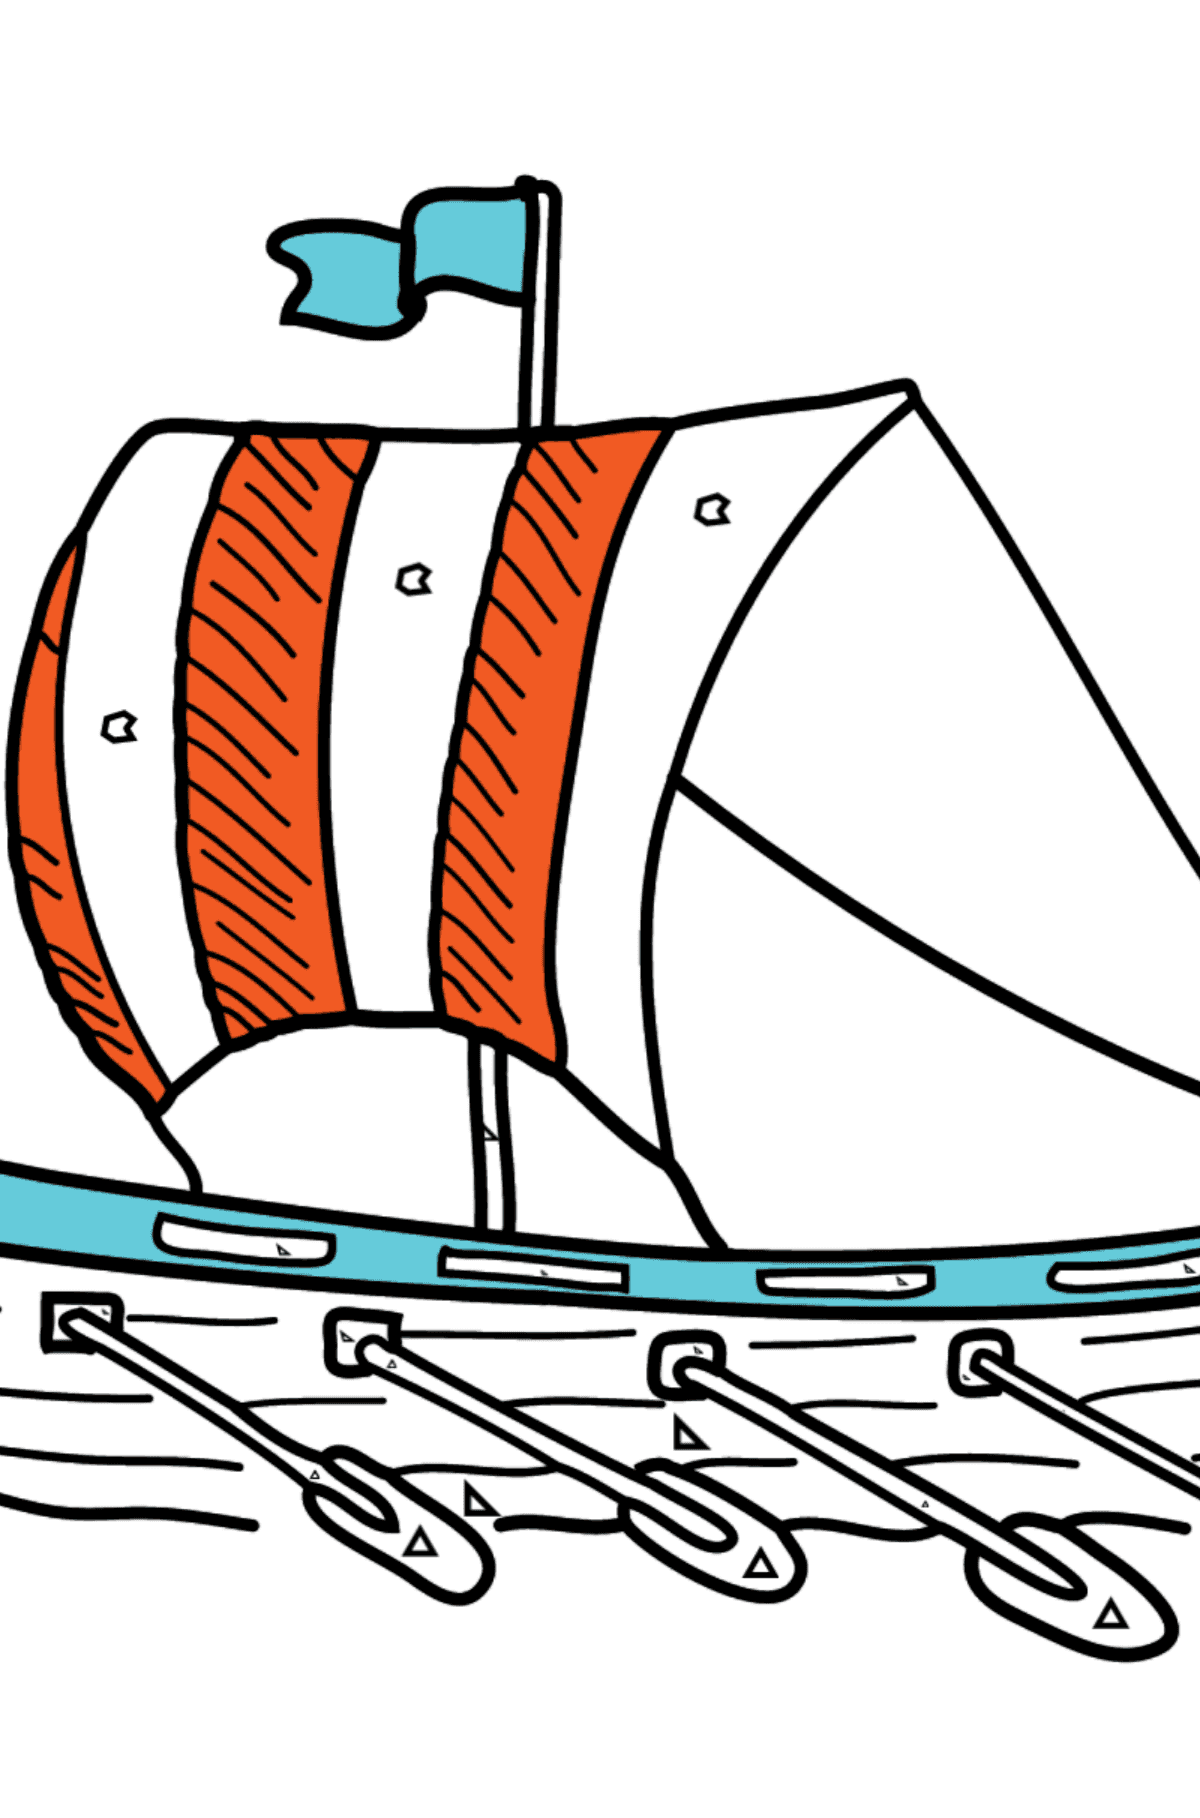 Coloring Page - A River Rowing Boat - Coloring by Geometric Shapes for Kids